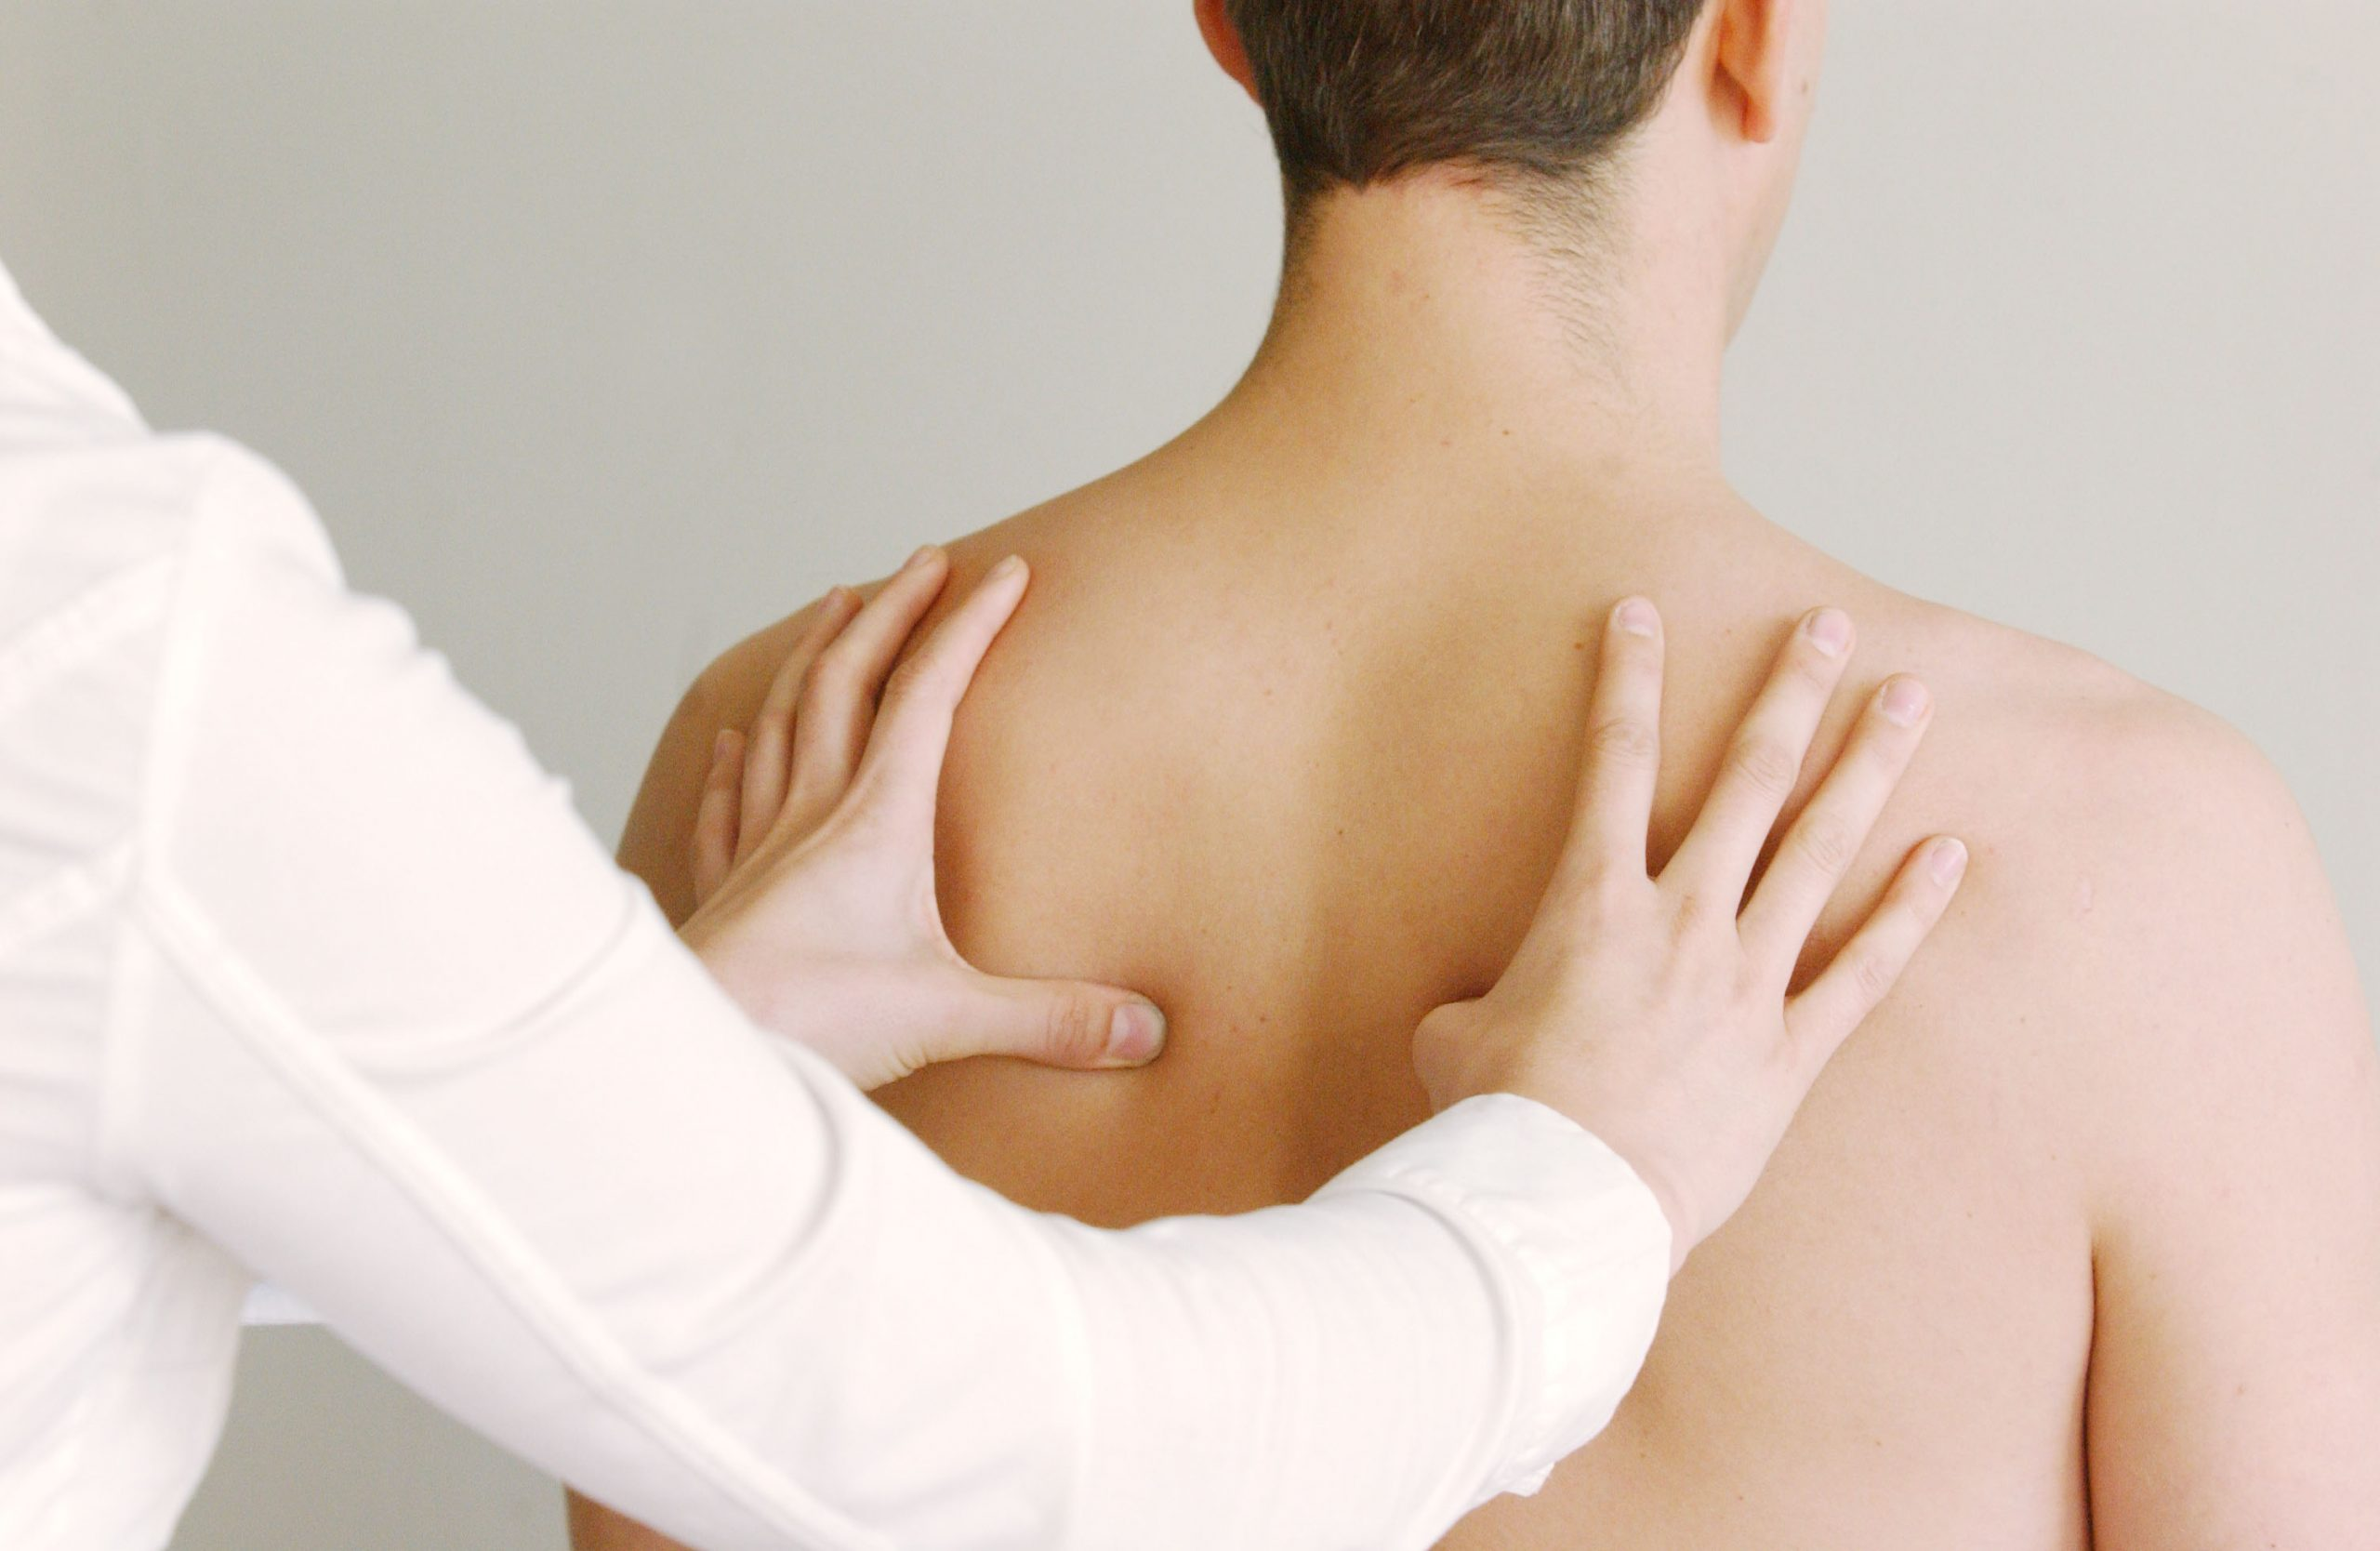 Melbourne osteopath